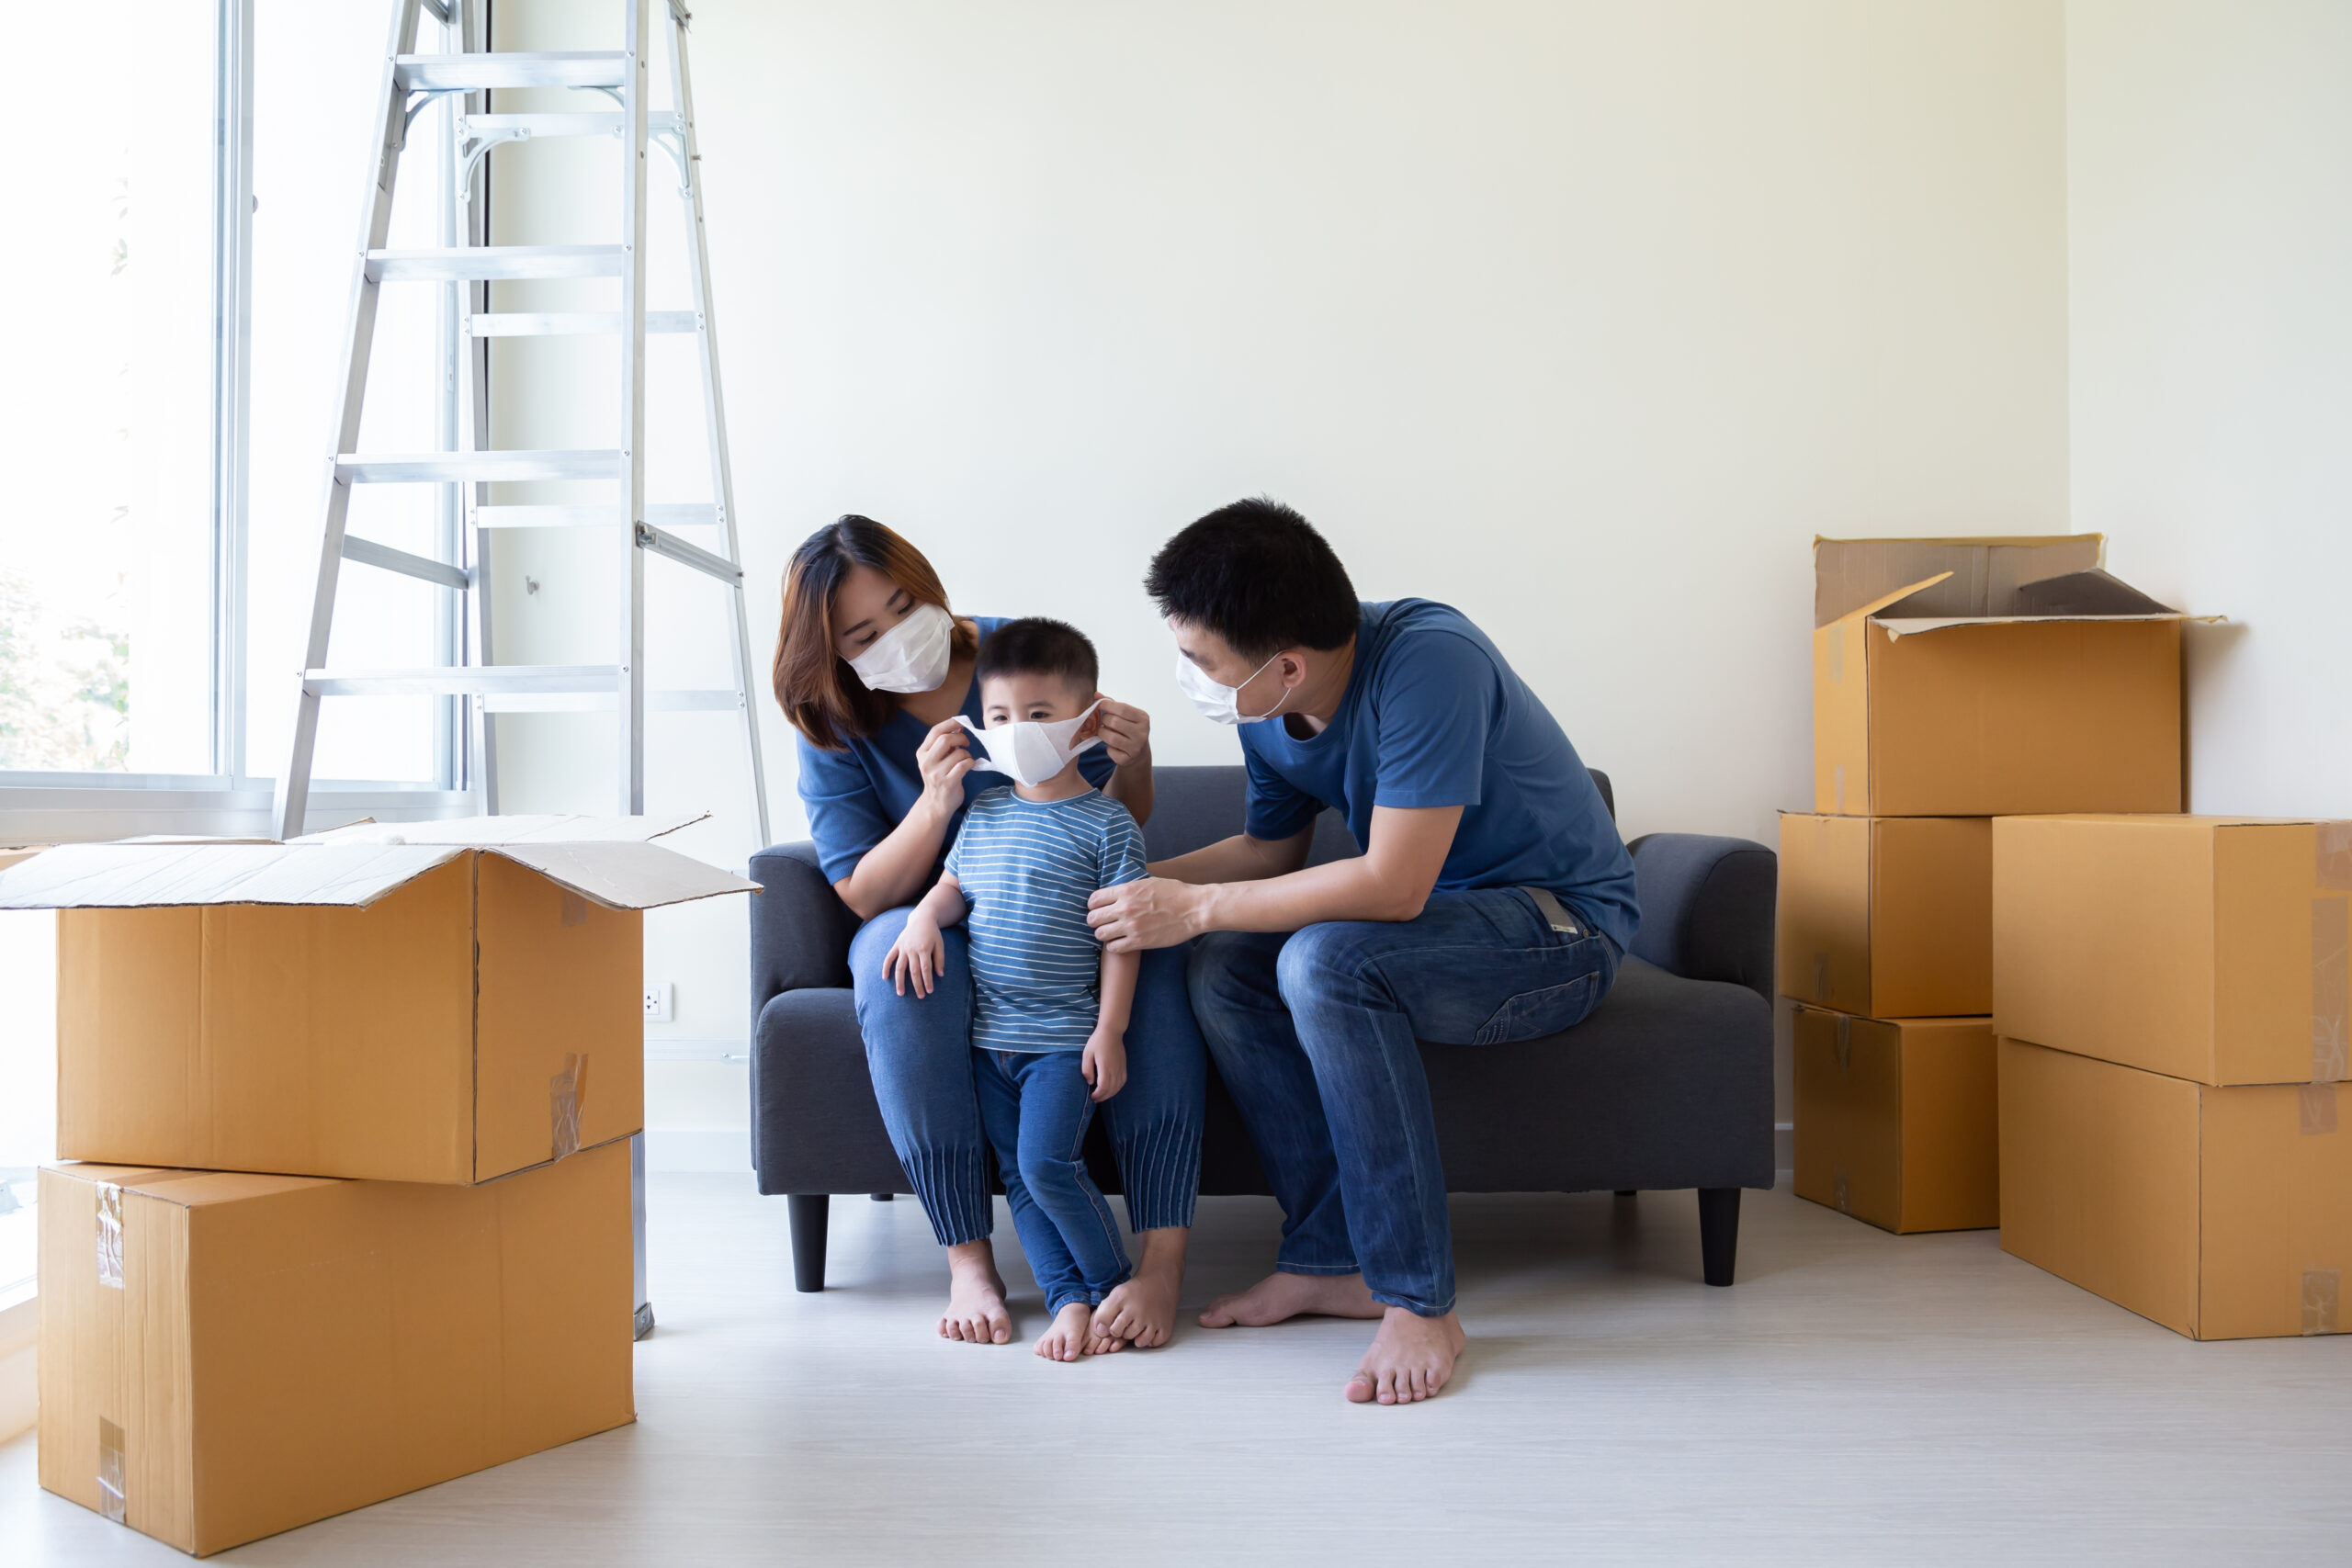 Asian family wearing protective medical mask for prevent virus covid-19 during moving day and relocating at new home.